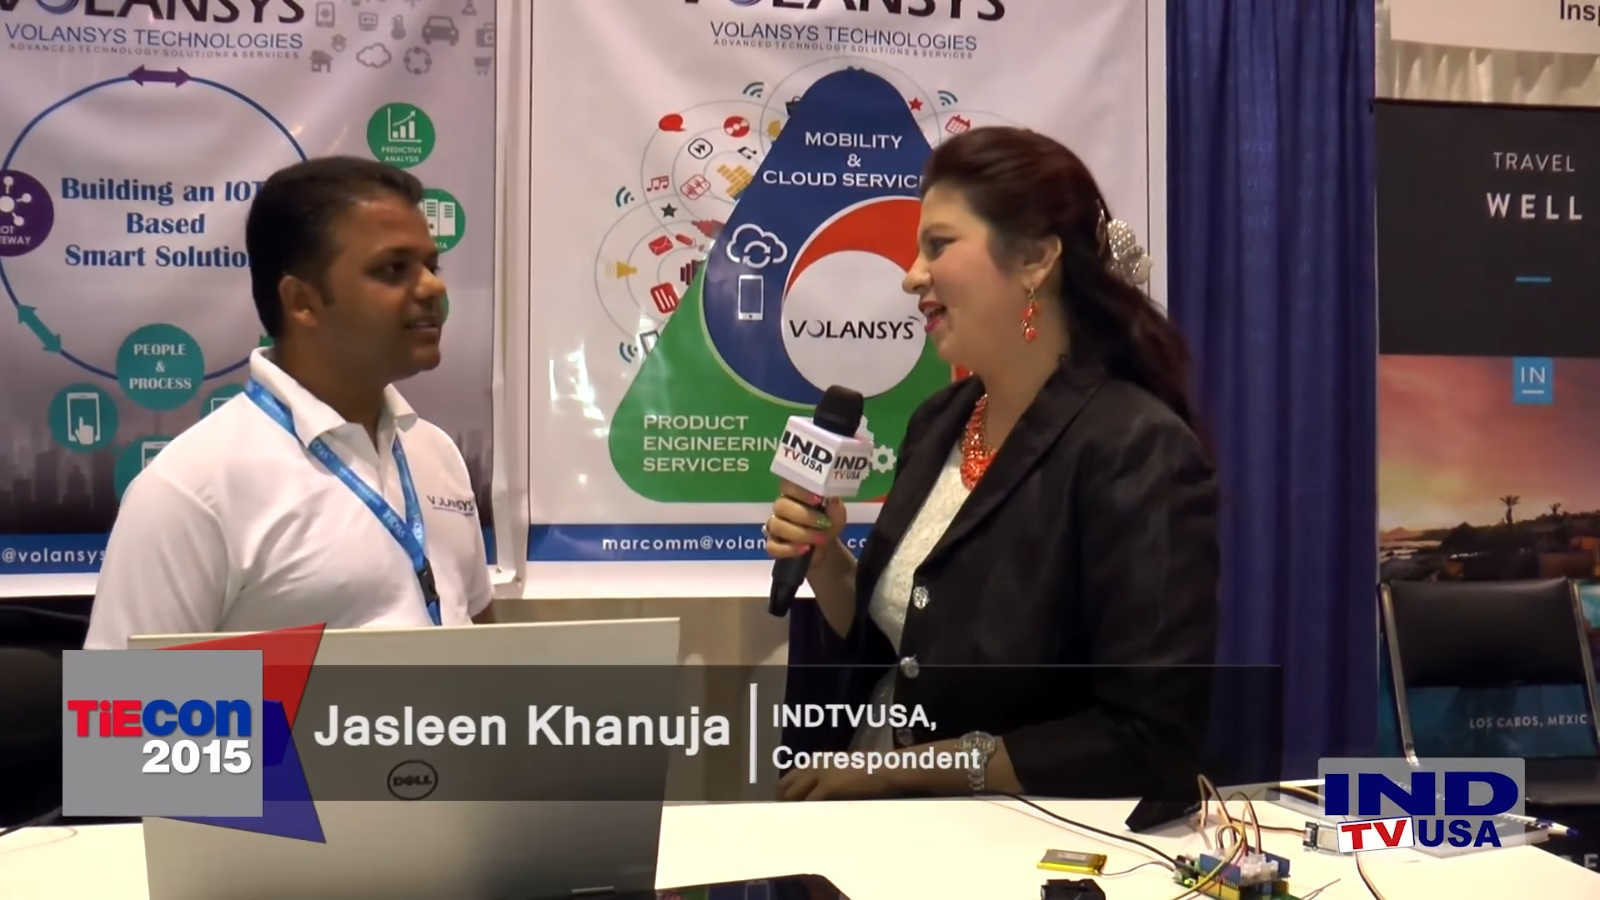 VOLANSYS AT TIECON 2015